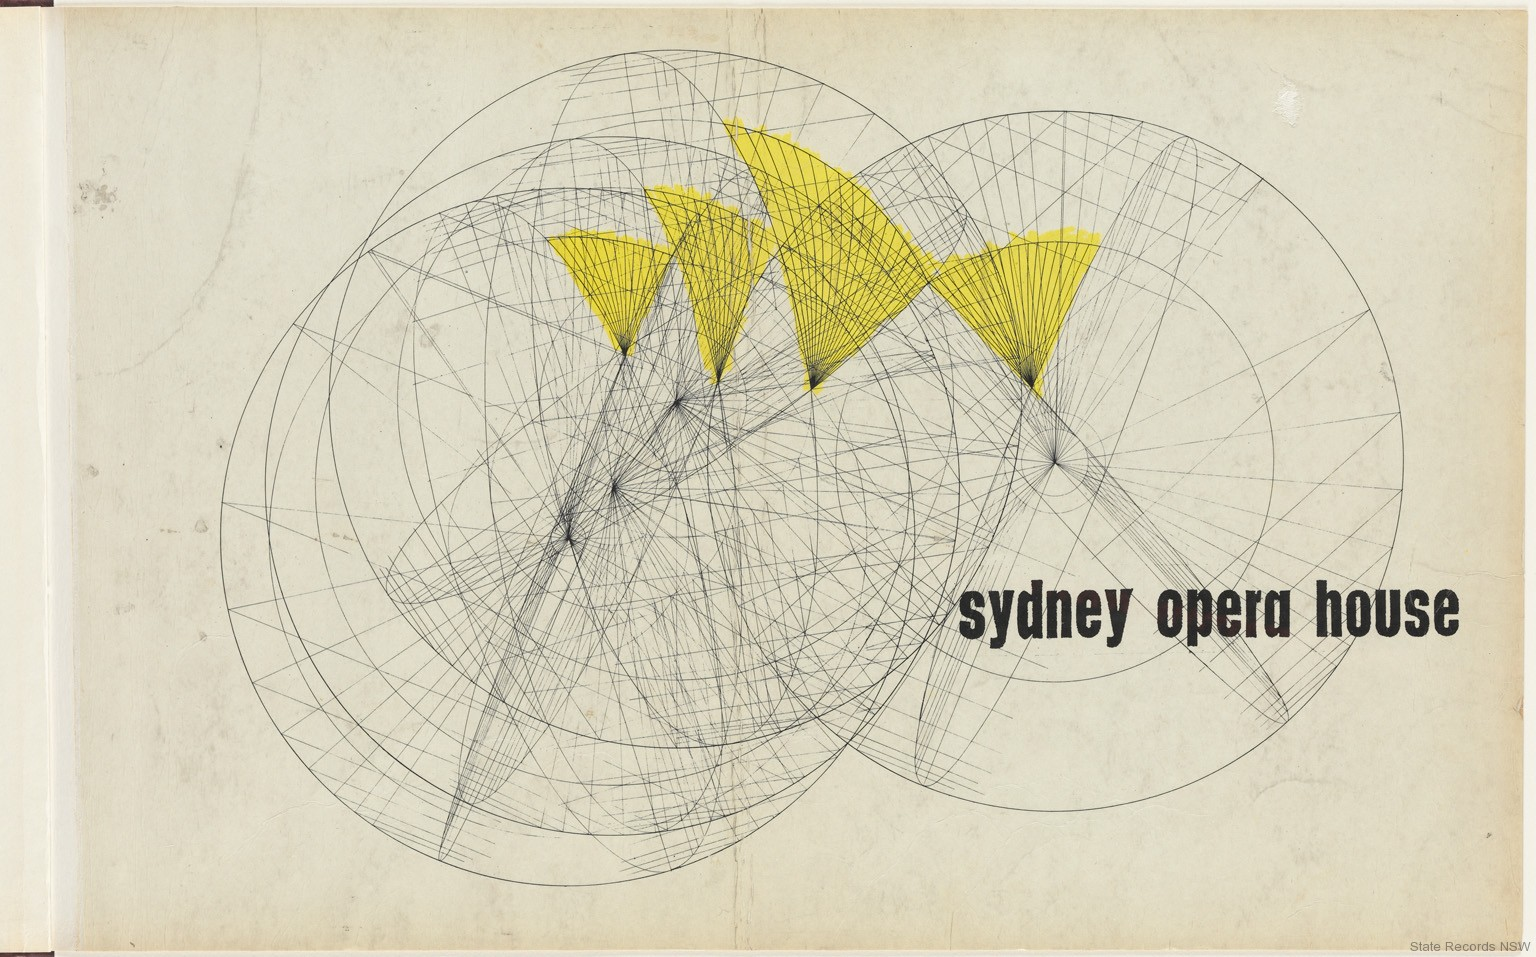 Sydney Opera House Yellow Book State Records NSW